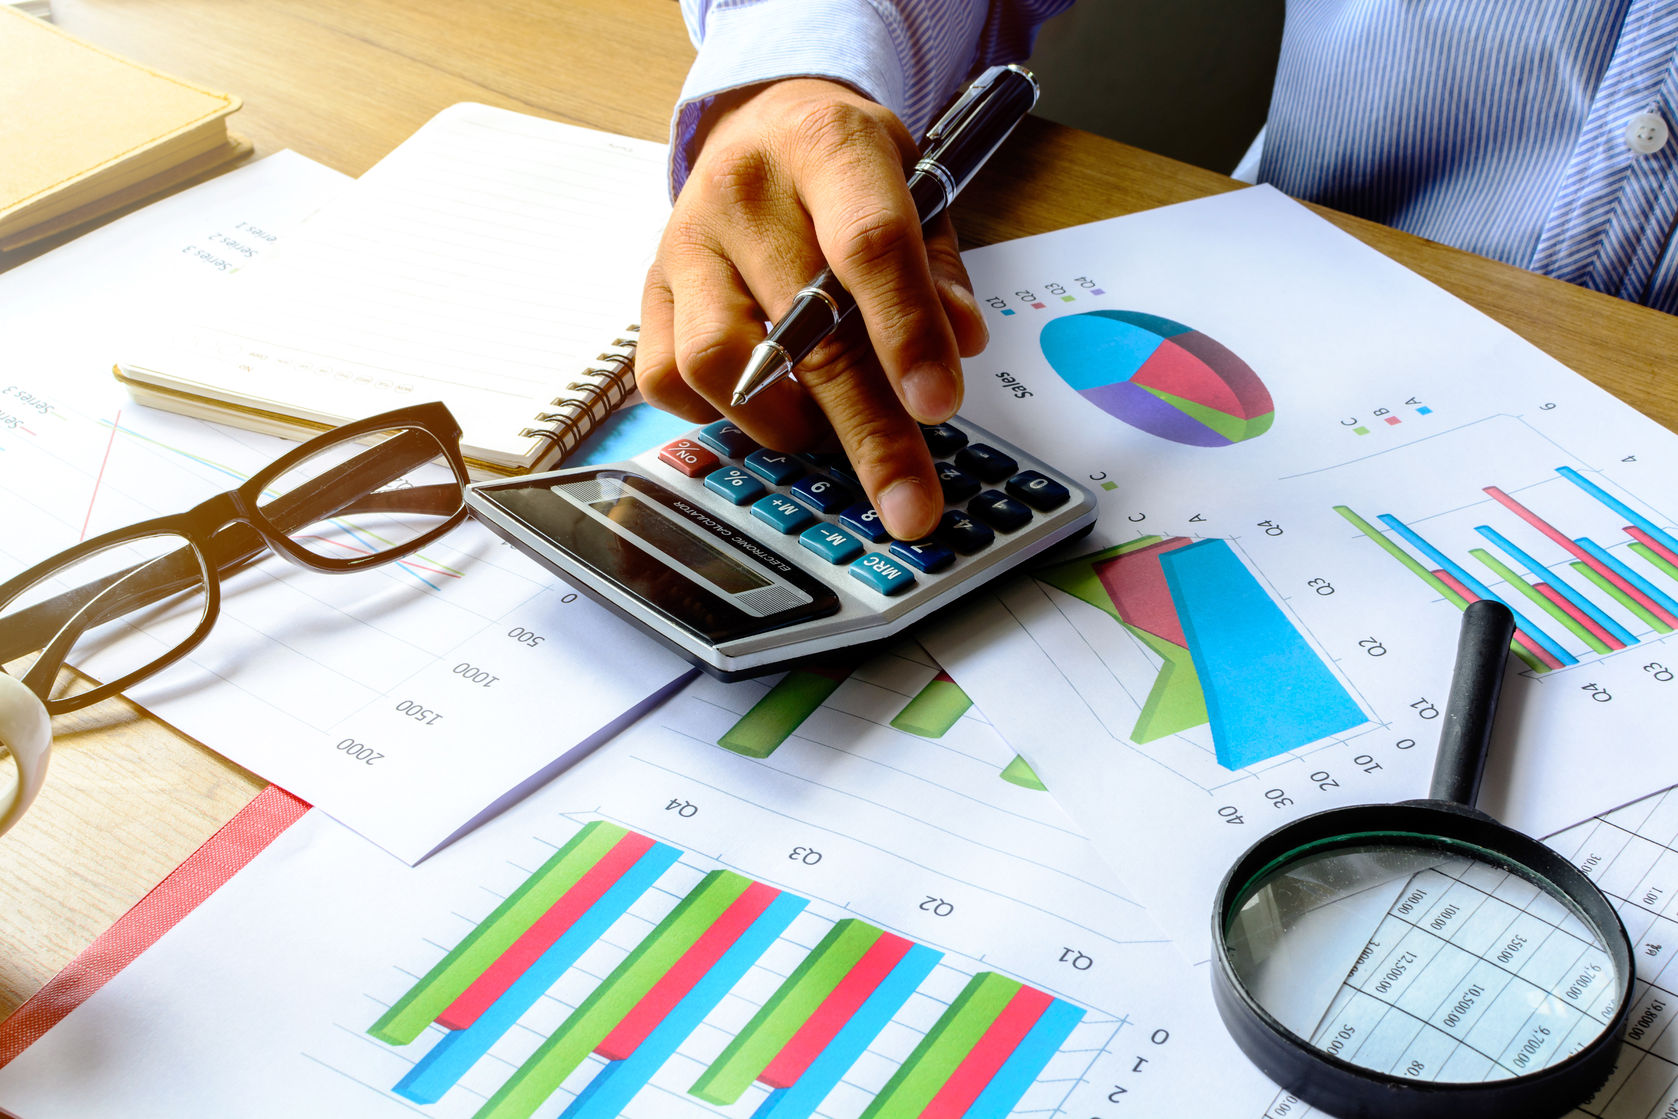 7 STEPS TO MONTH-END REPORTING WITH SAP BUSINESS ONE